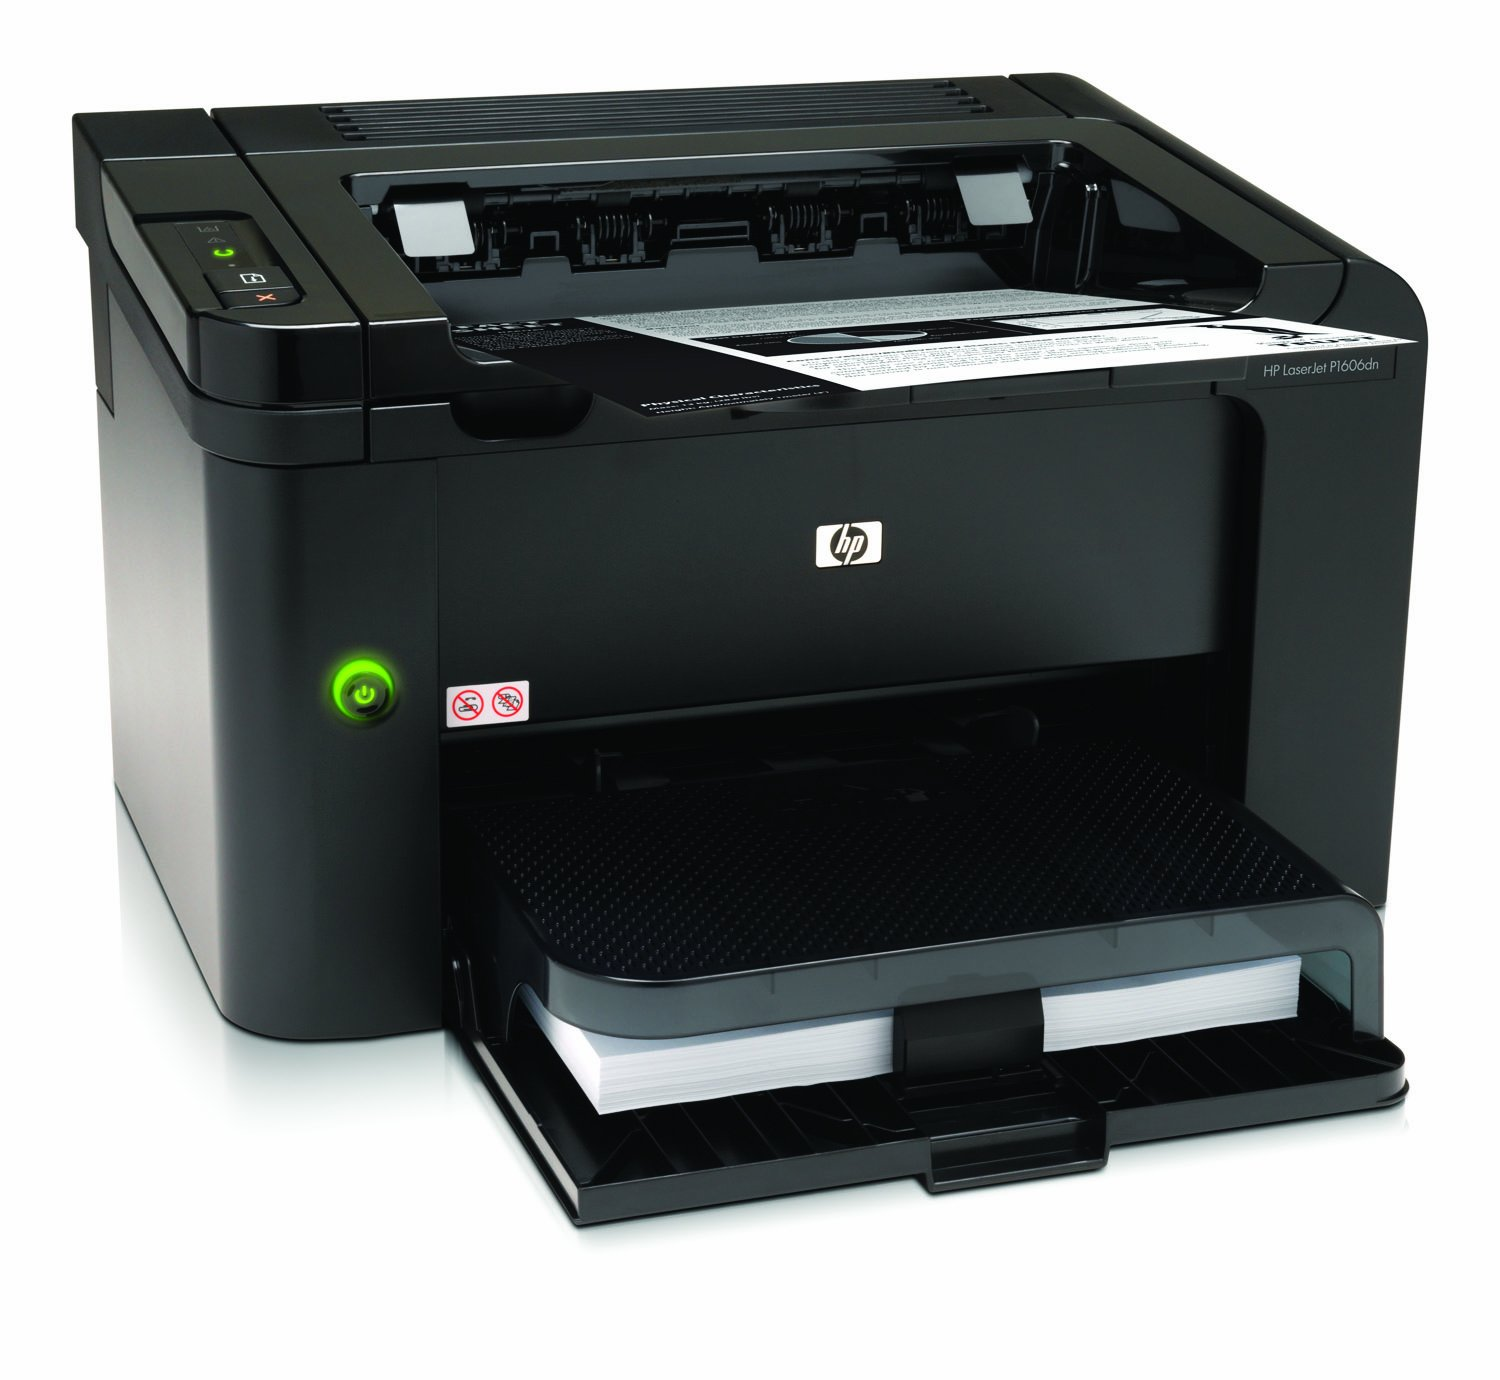 HP LASERJET P1606 TREIBER WINDOWS 10